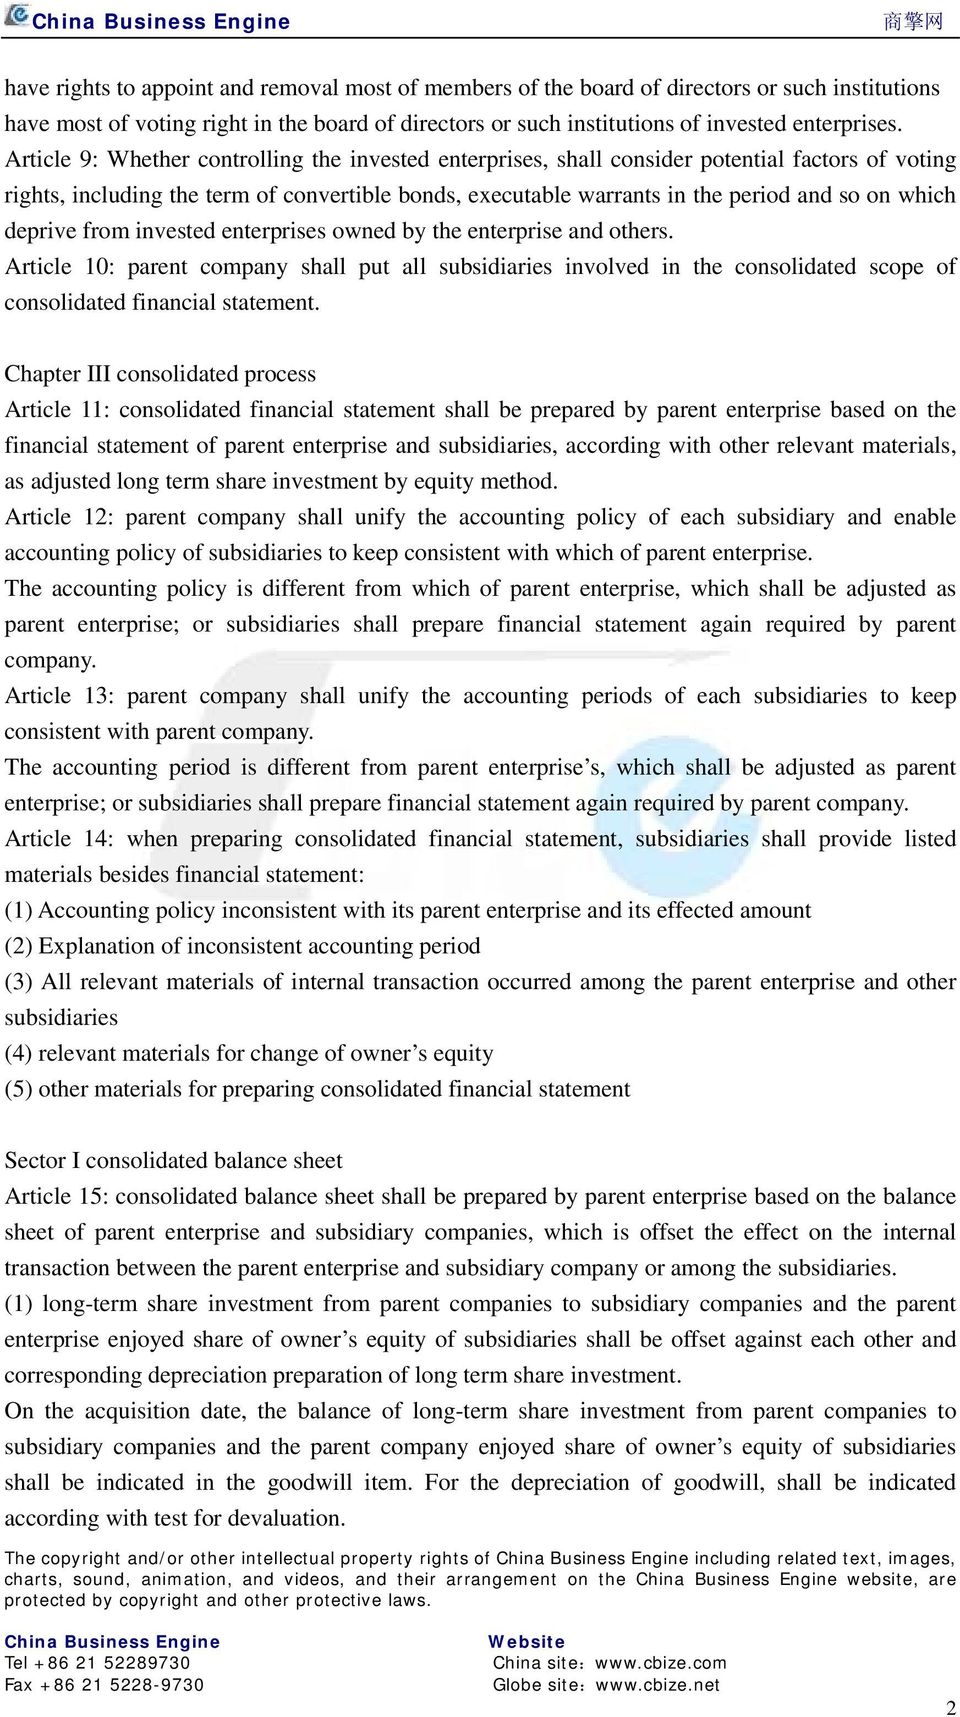 deprive from invested enterprises owned by the enterprise and others. Article 10: parent company shall put all subsidiaries involved in the consolidated scope of consolidated financial statement.